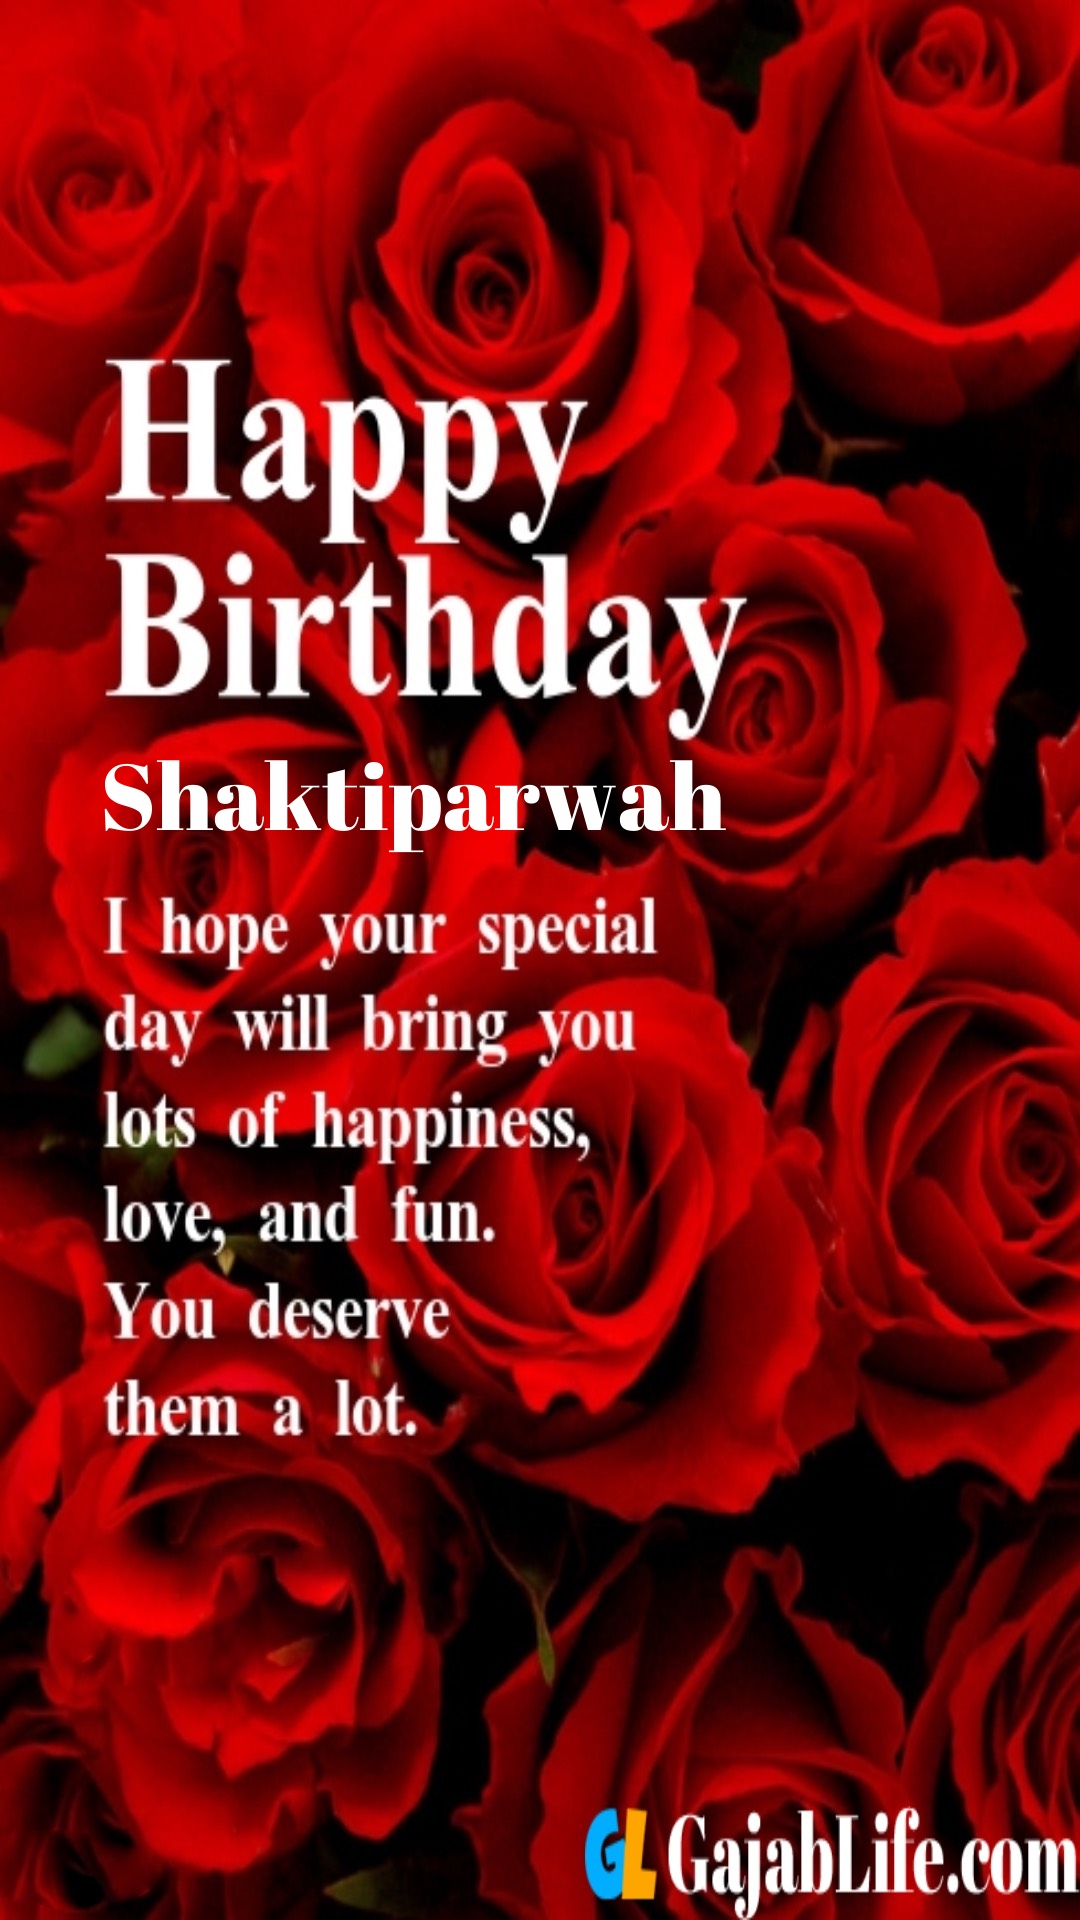 Shaktiparwah birthday greeting card with rose & love